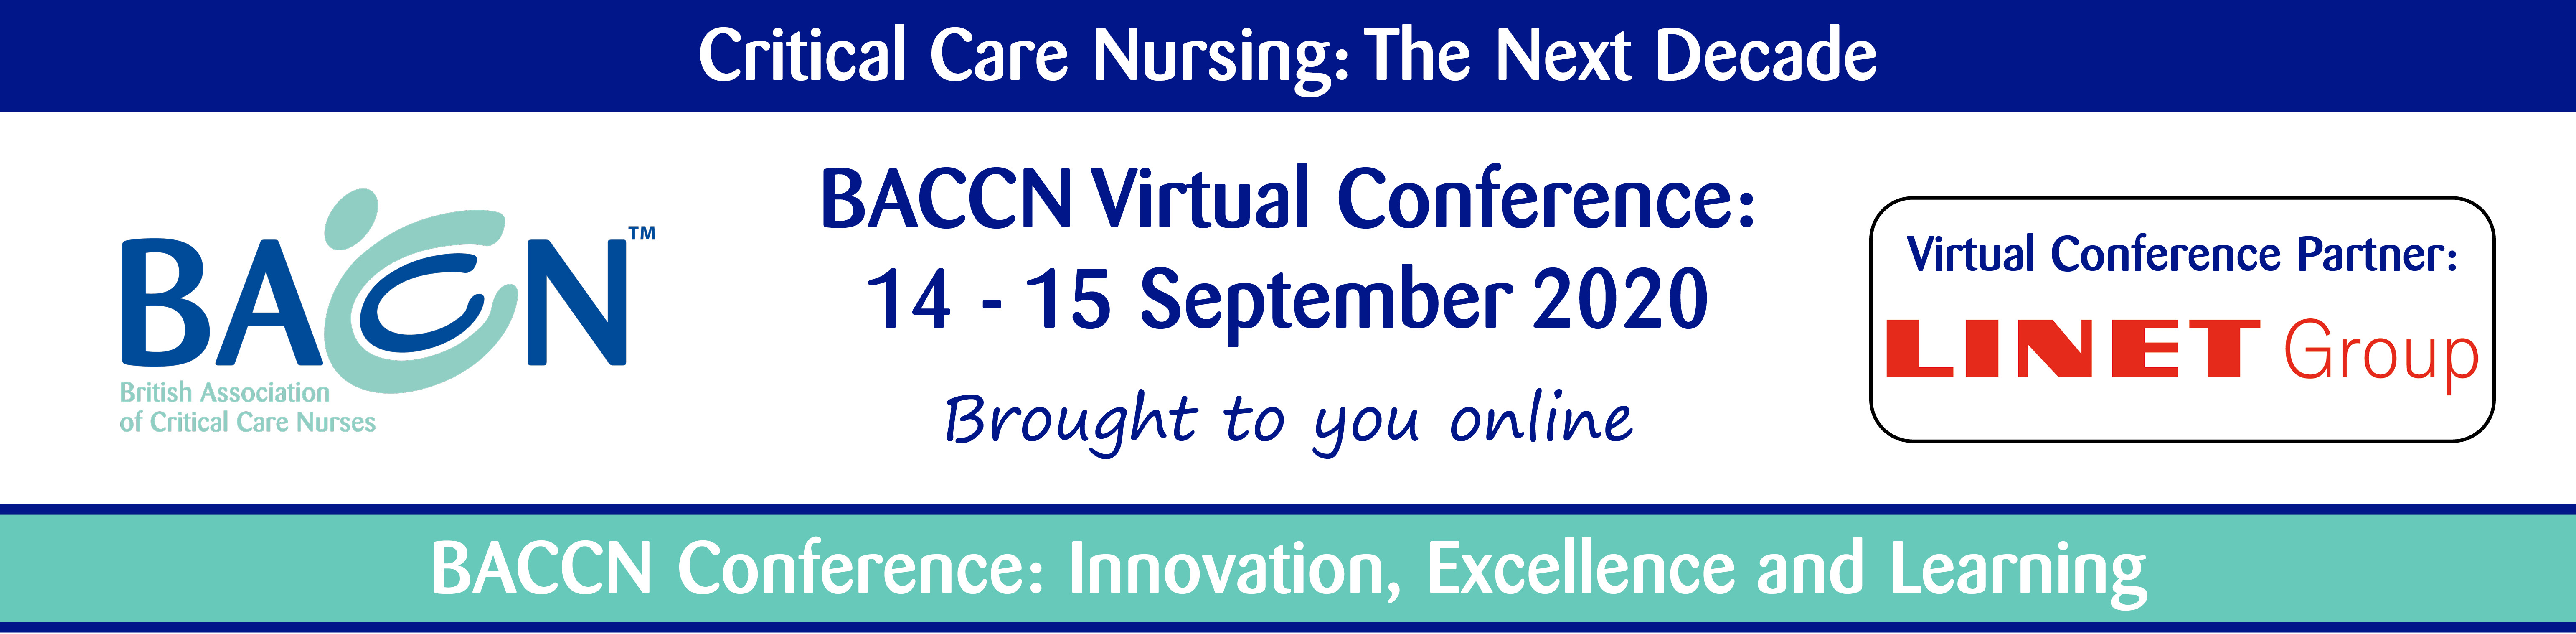 BACCN Conference 2020